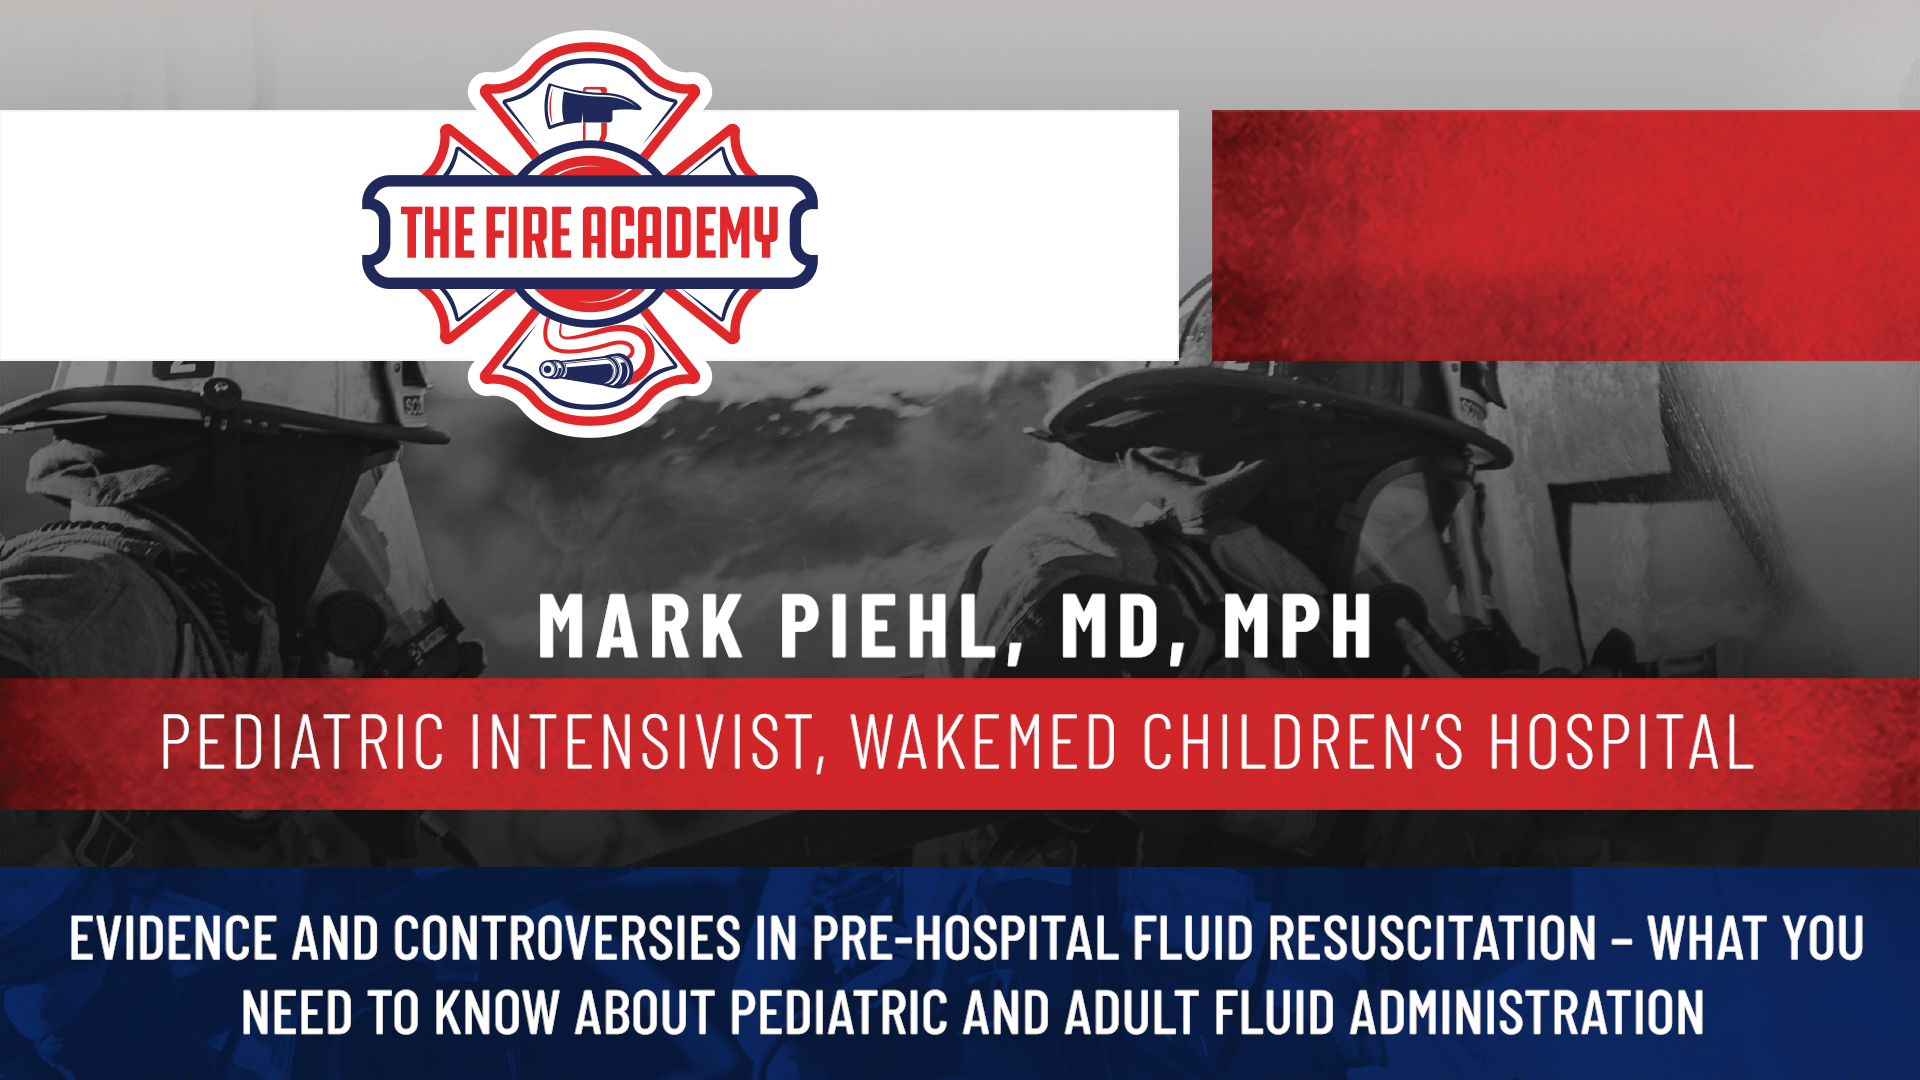 Evidence and Controversies in Pre-hospital Fluid Resuscitation – What You Need to Know About Pediatric and Adult Fluid Administration